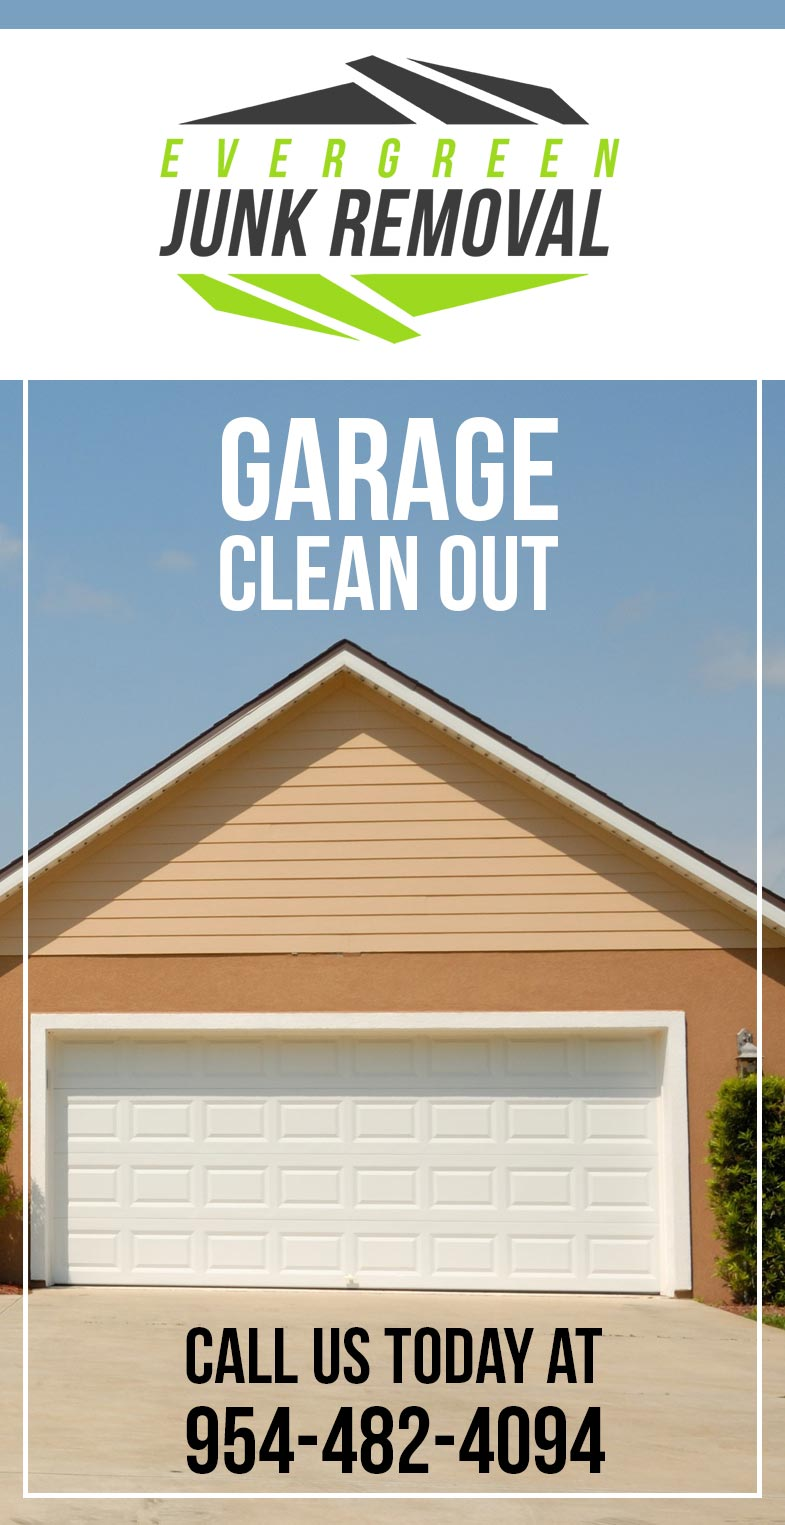 Garage Clean Out Service Company